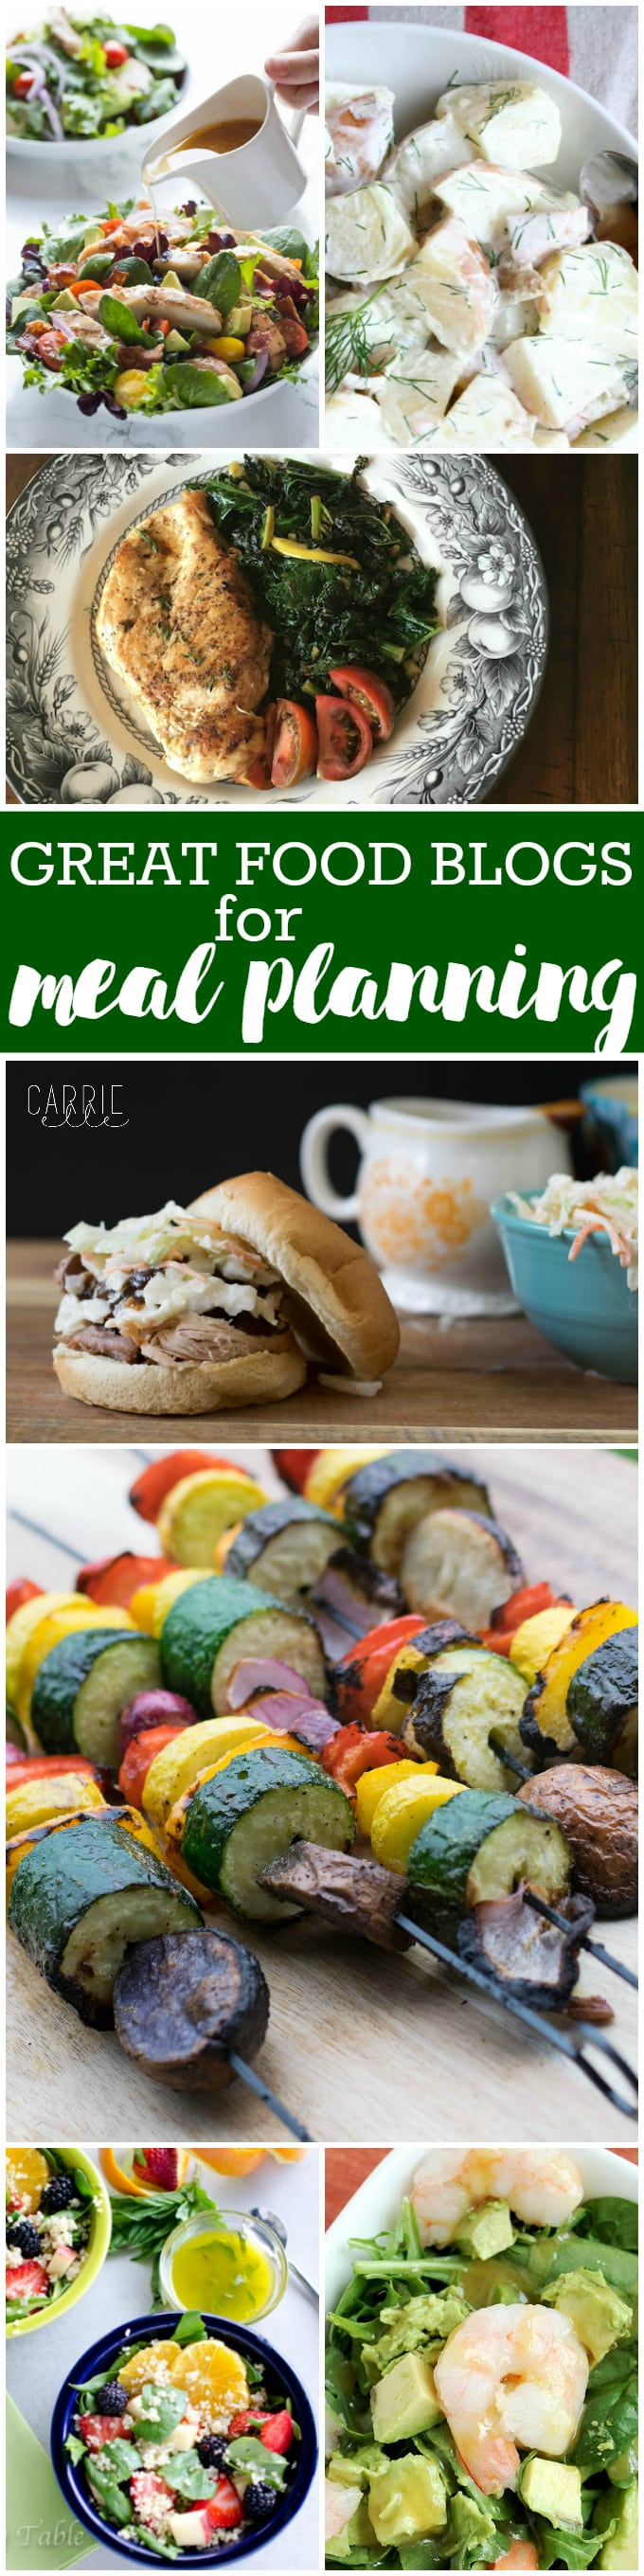 Best food blogs for meal planning carrie elle great food blogs for meal planning forumfinder Image collections